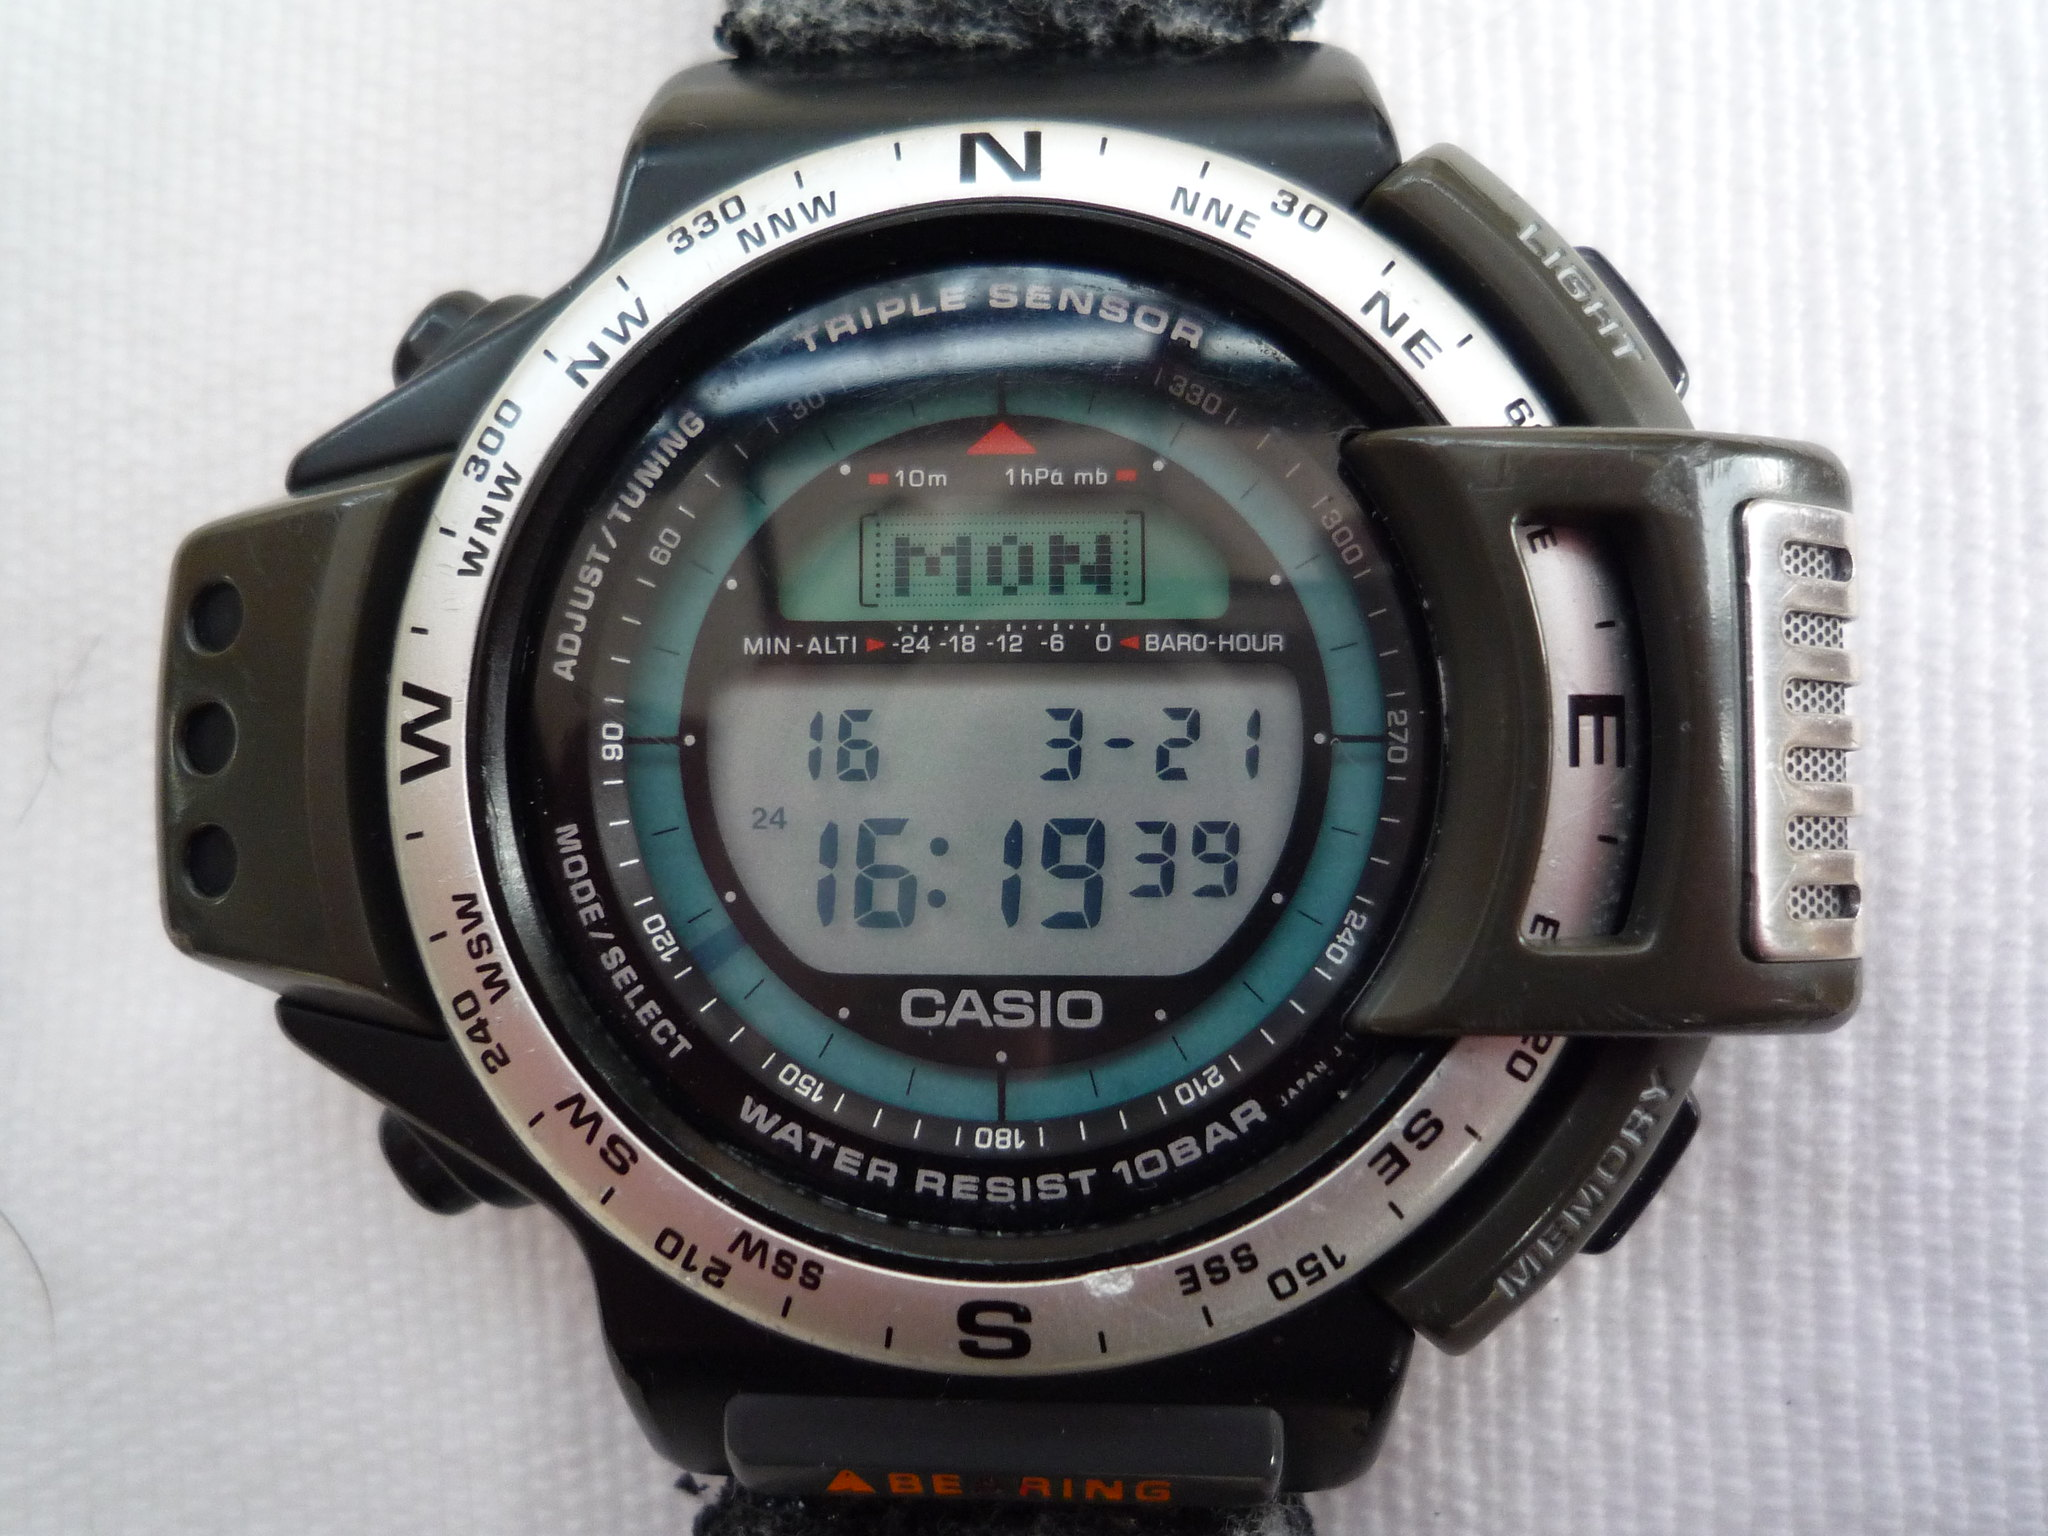 abc smart casio a wear climbs mountain review android watch watches outdoor